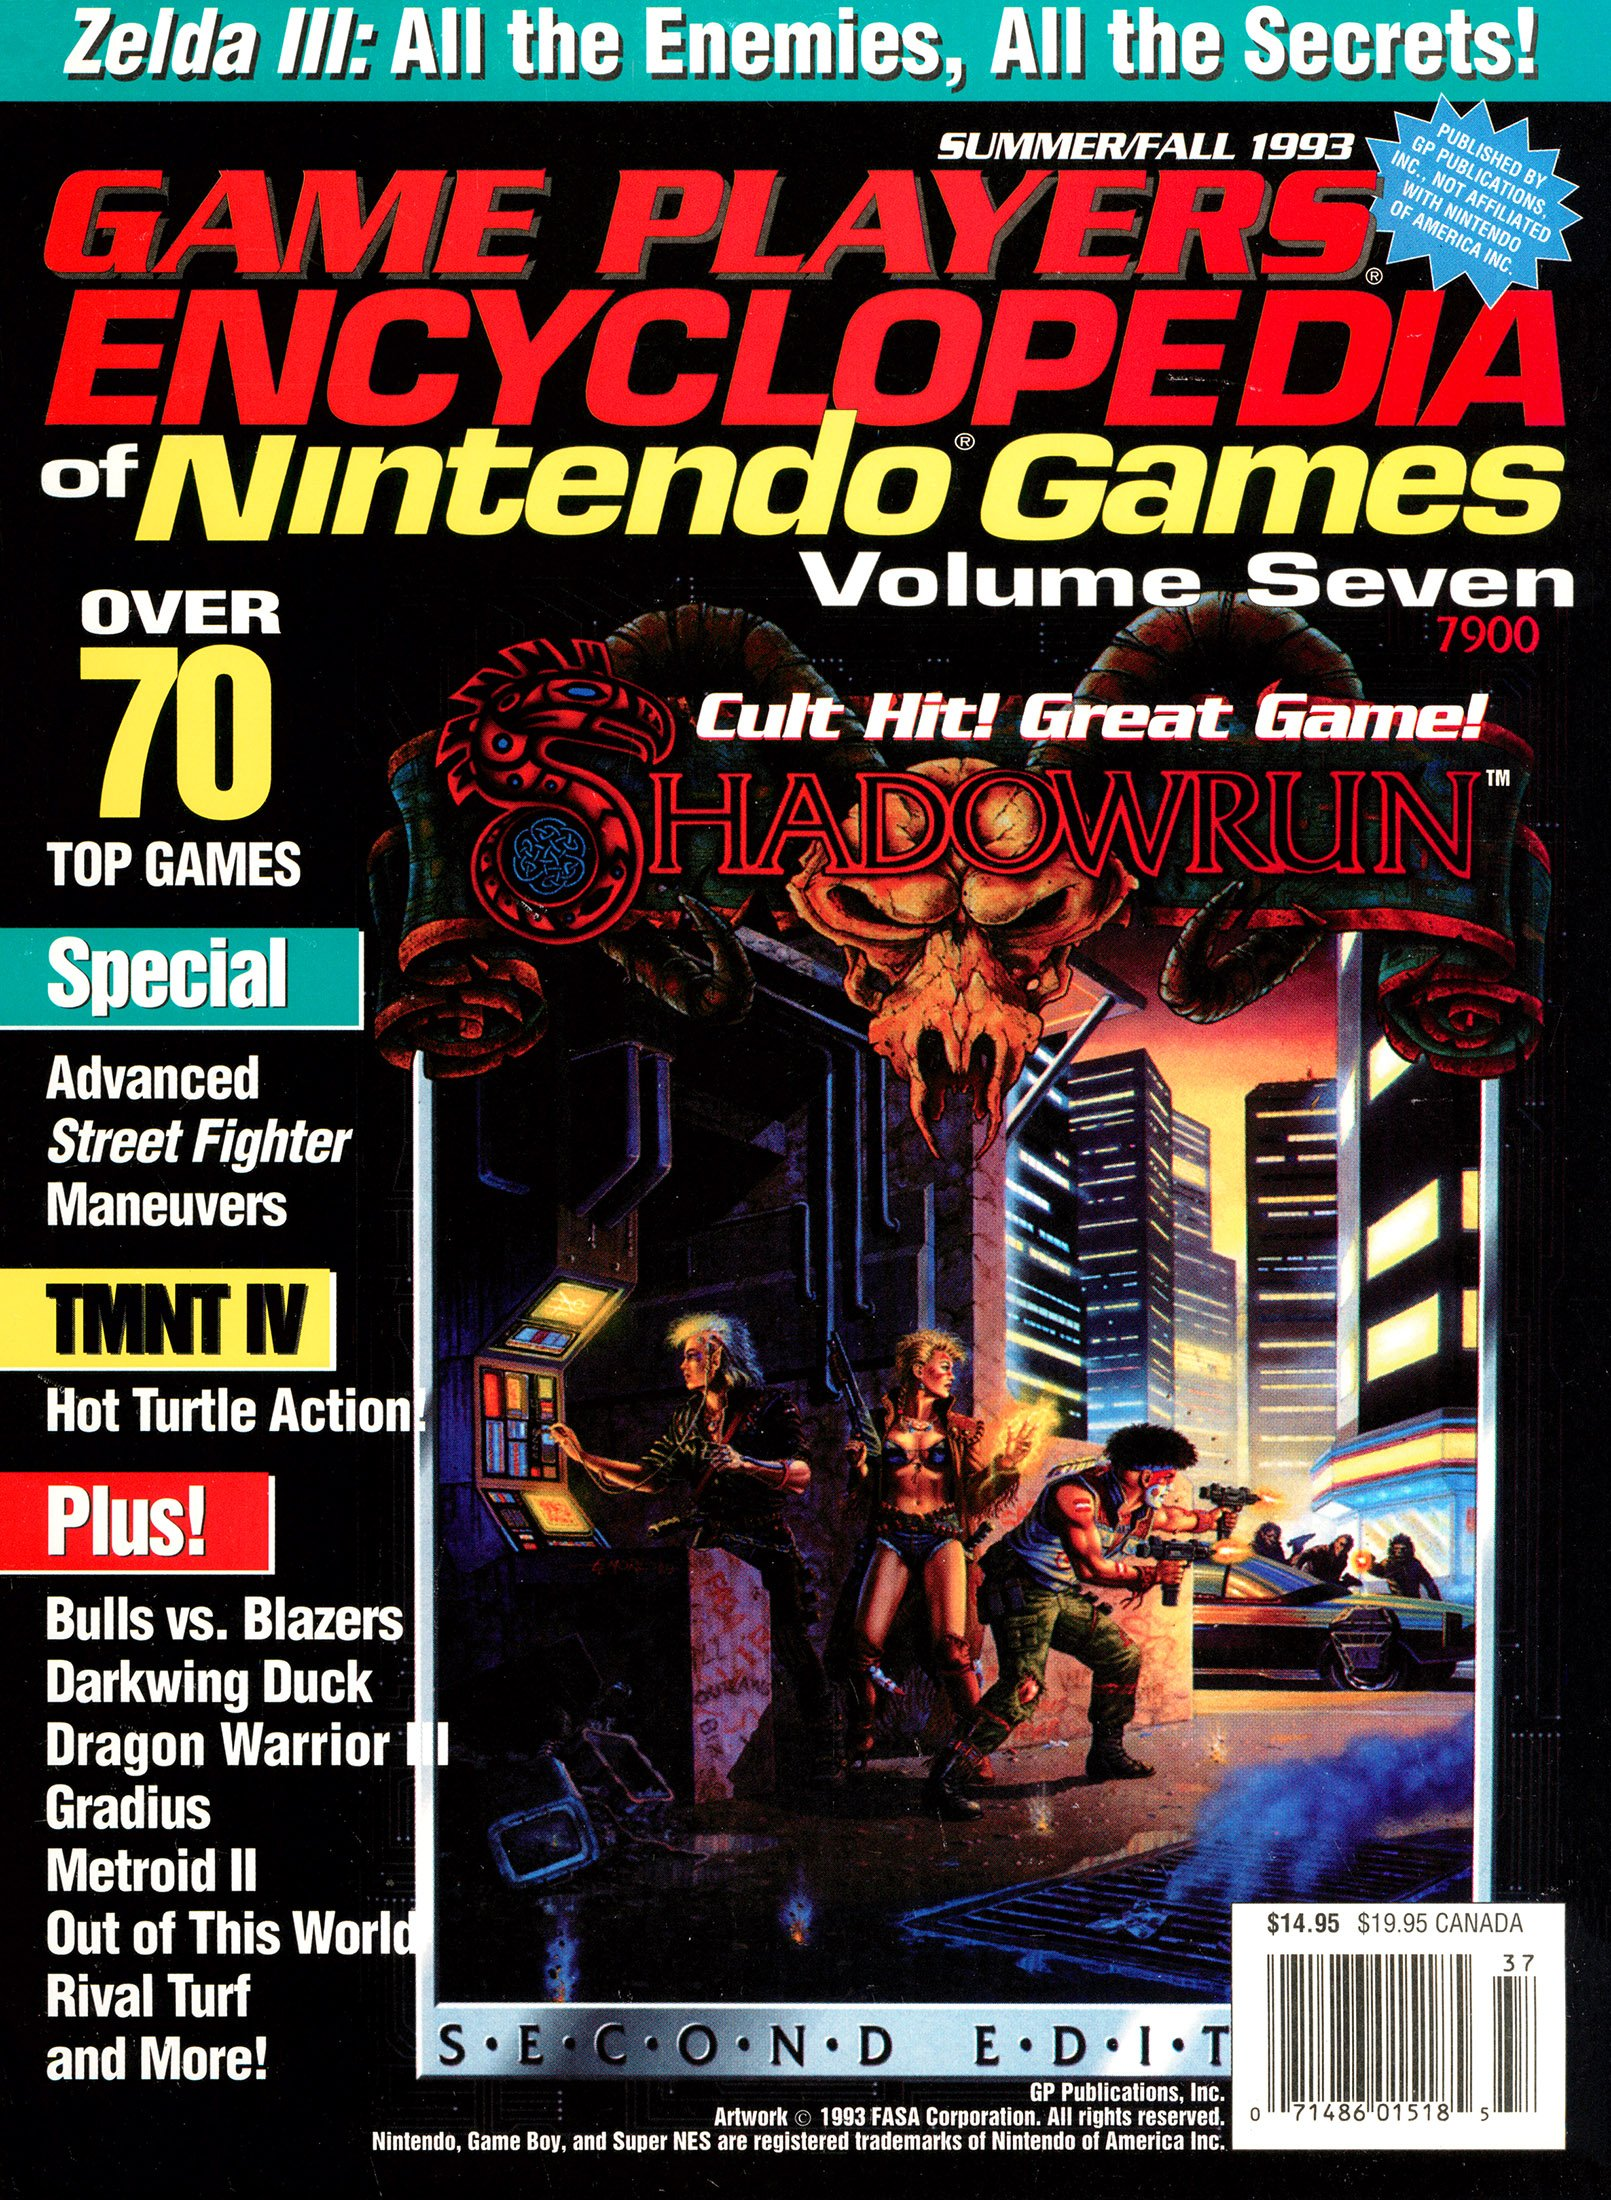 Game Players Encyclopedia of Nintendo Games Volume Seven (Summer-Fall 1993)